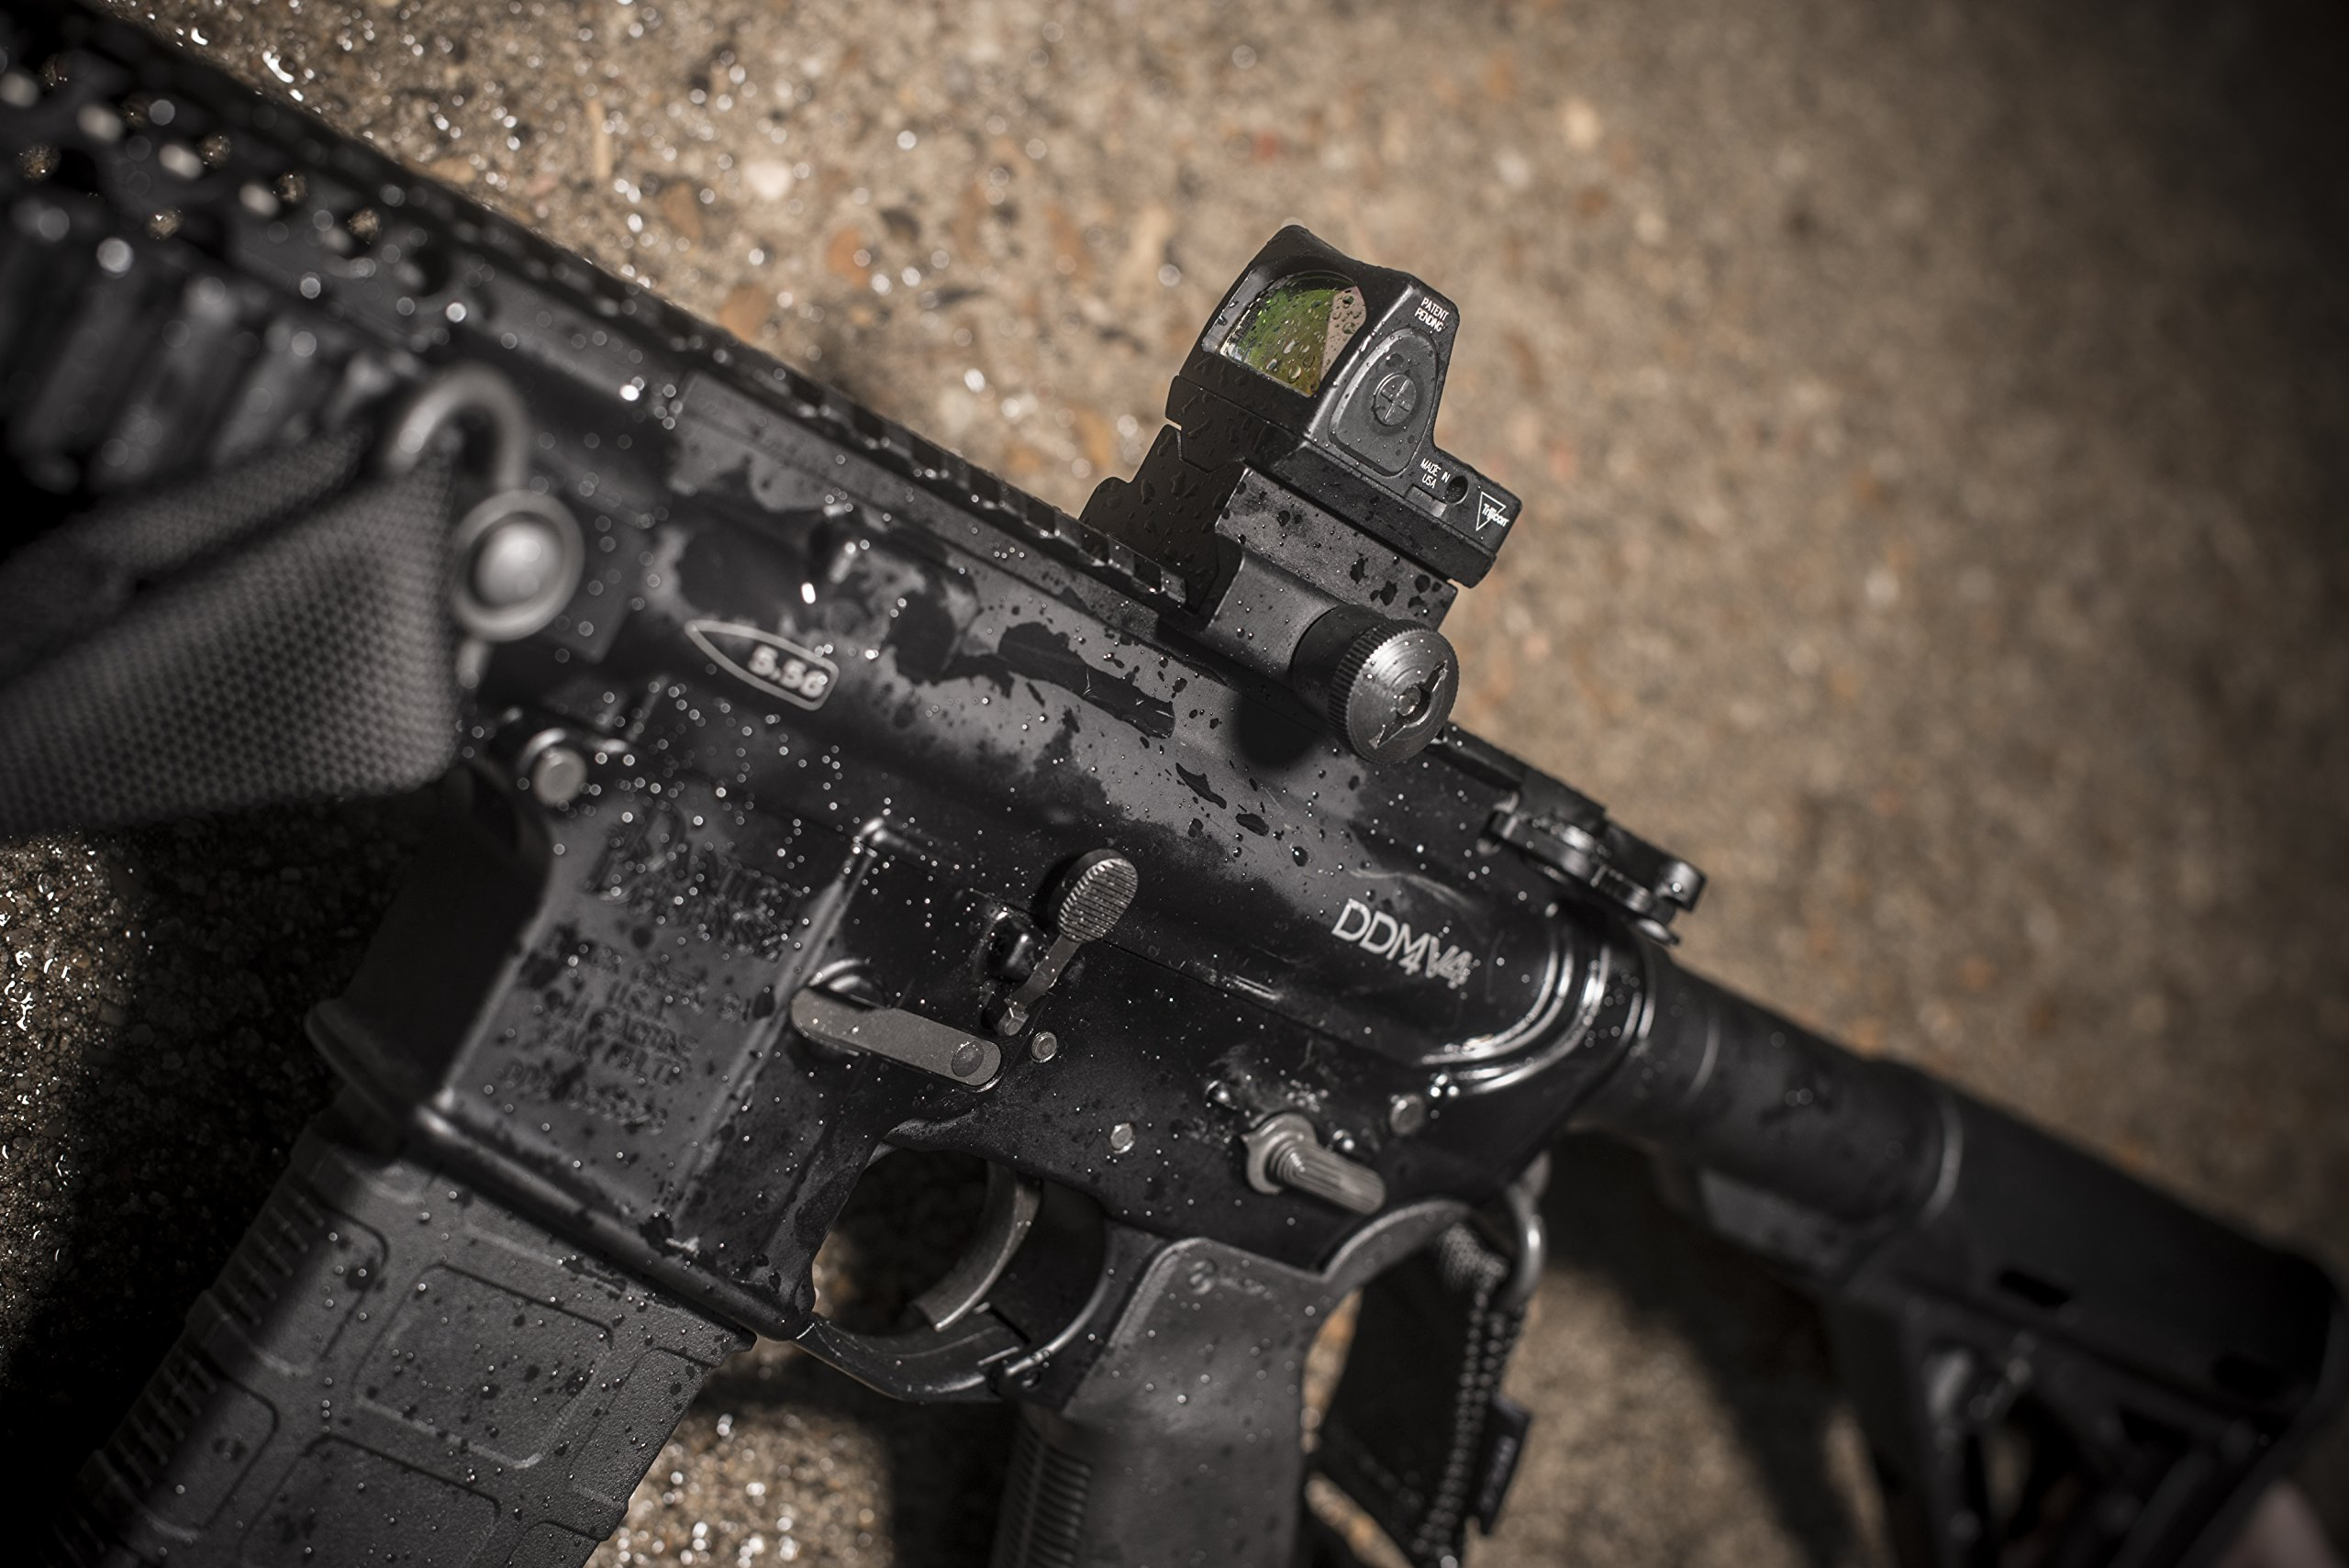 Trijicon RM04-35 RMR 7 MOA Dual-Illuminated Amber Dot Sight with RM35 Full Size ACOG Mount with Bosses by Trijicon (Image #8)